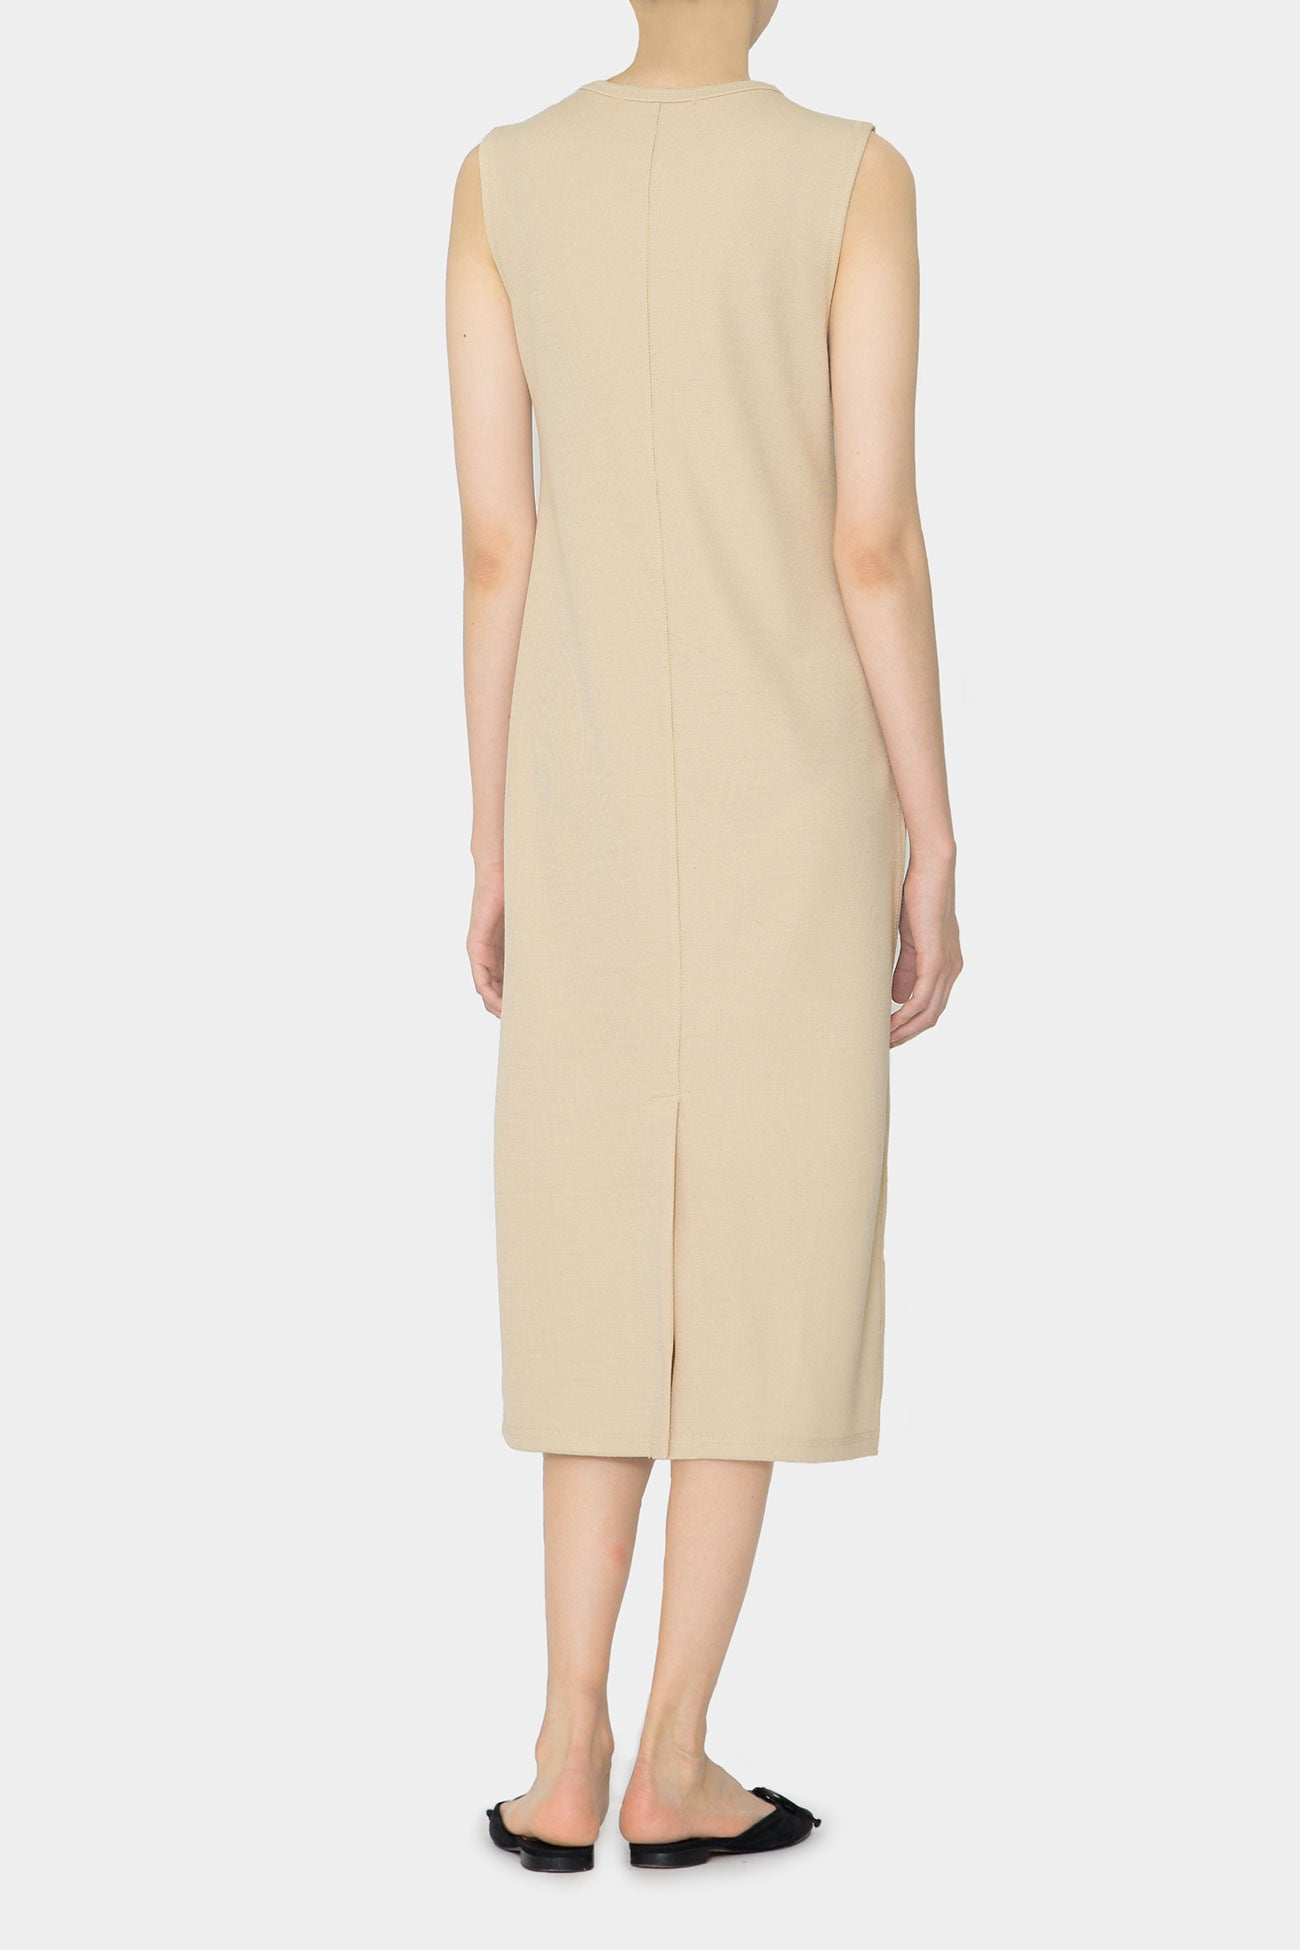 BEIGE BREE DAY LONG DRESS